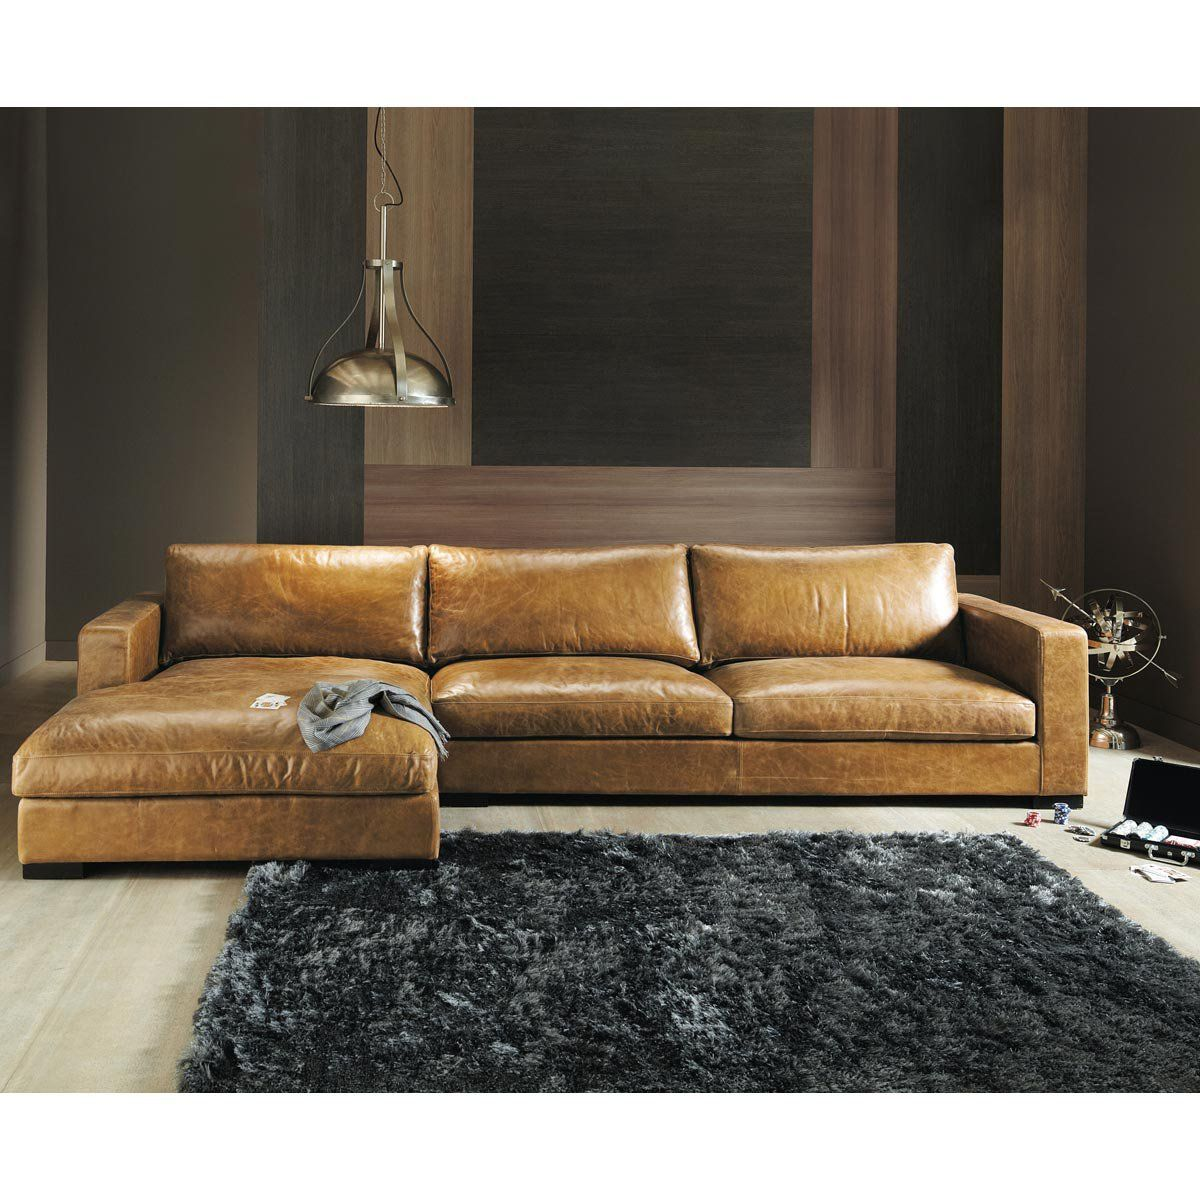 Best Vintage Brown Leather Sectional Corner Sofa Seats 3 4 640 x 480